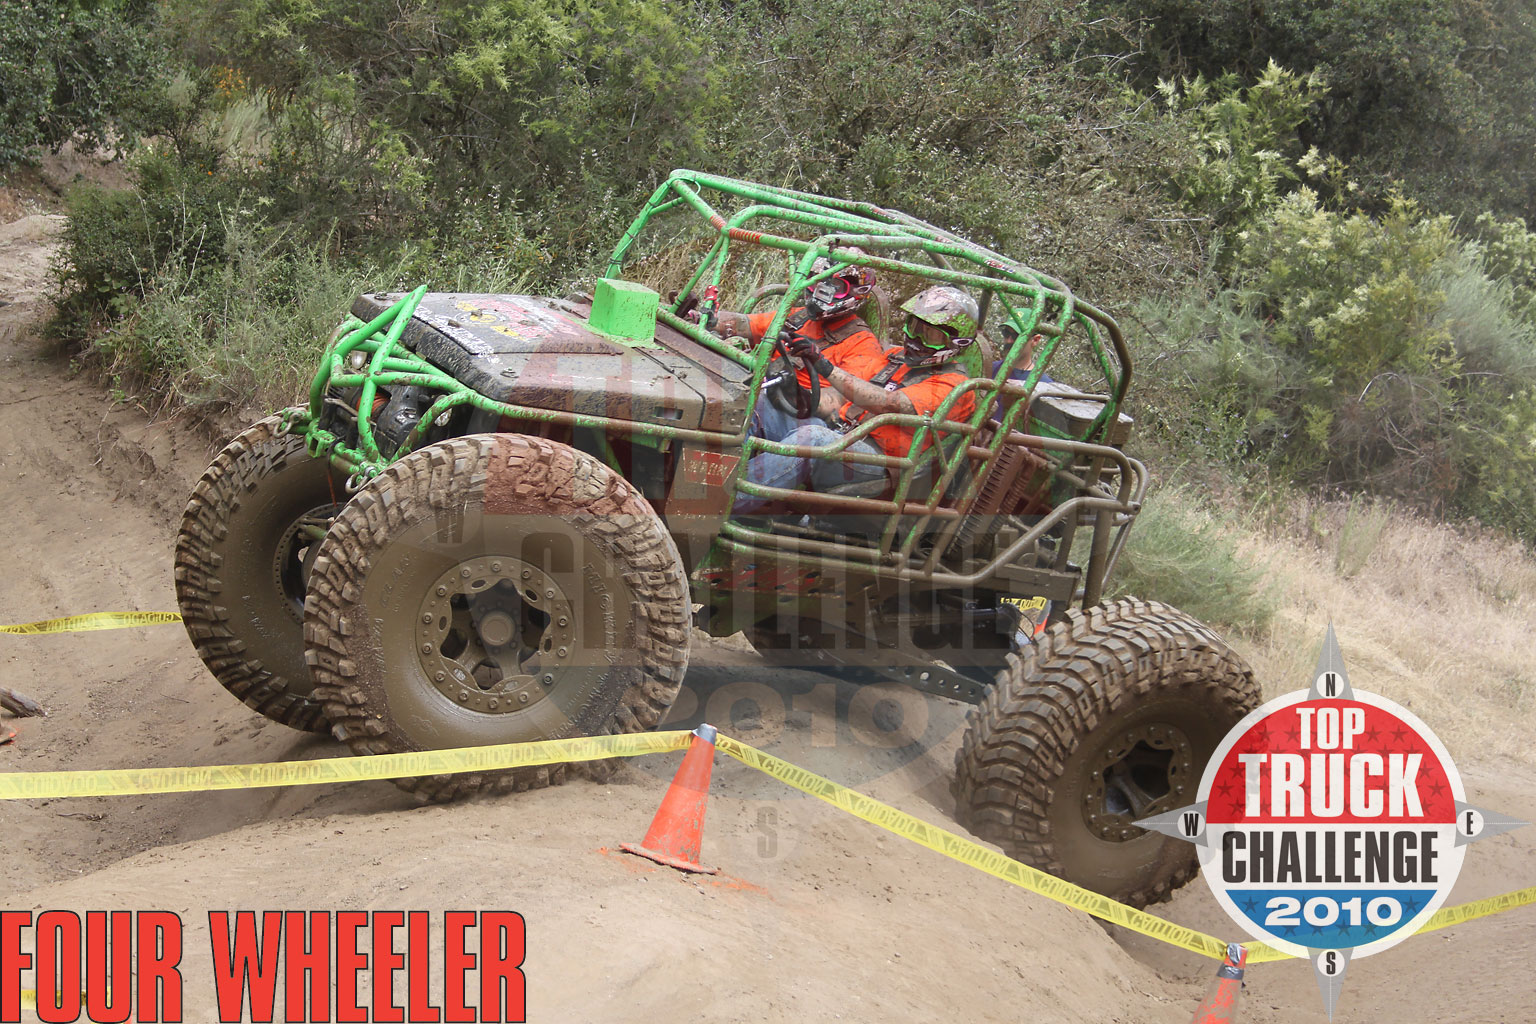 2010 Top Truck Challenge Obstacle Course Ryan Knoche 1990 Suzuki Samurai Buggy